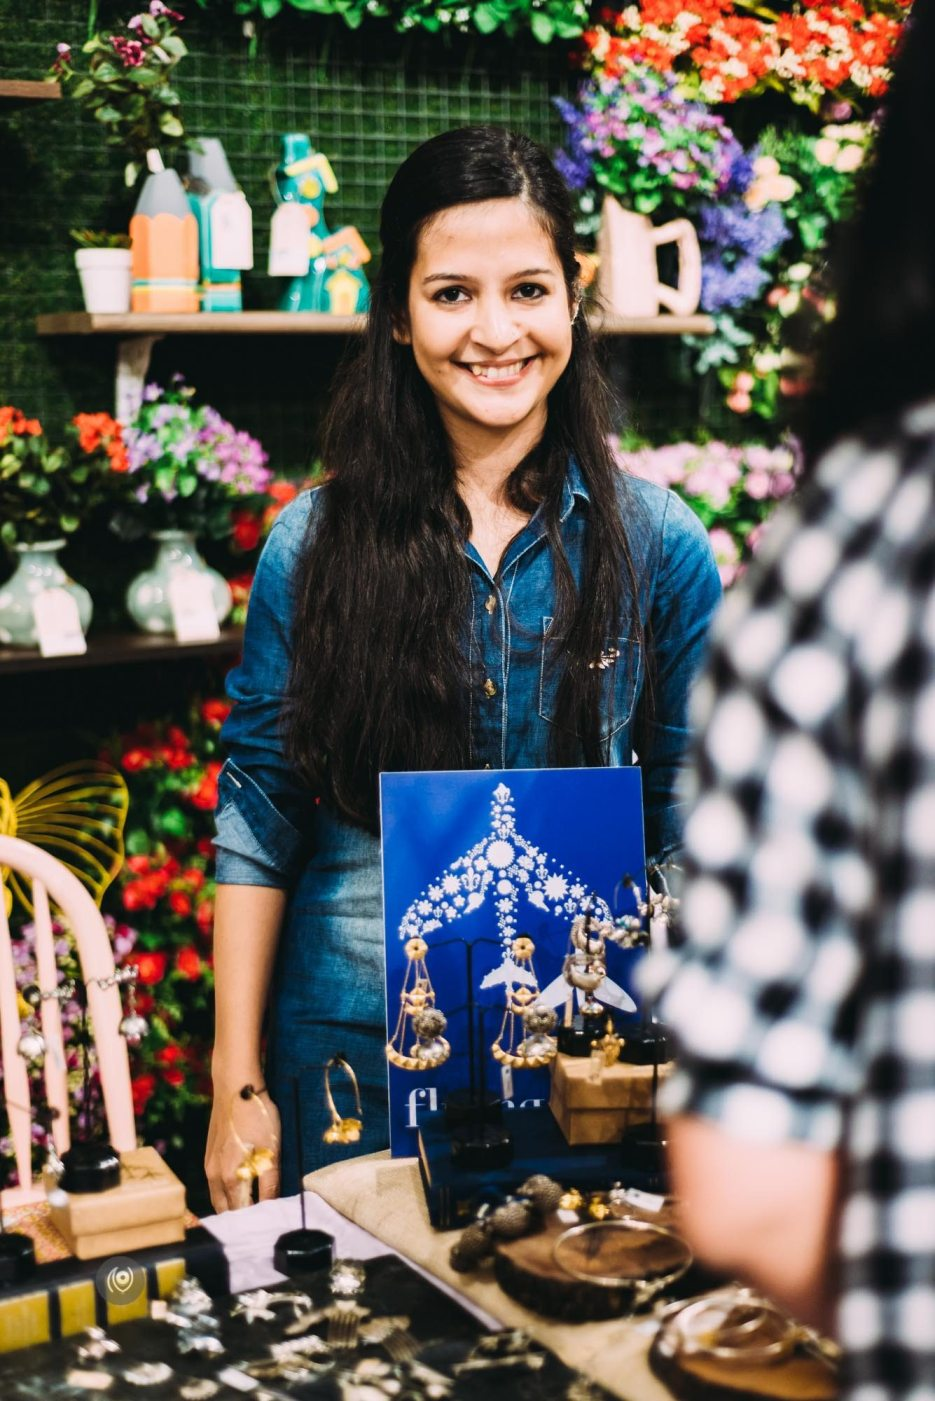 Naina.co, Visual Storyteller, Luxury Brands, Naina Redhu, Professional Photographer, Experience Collector, Luxury Photographer, Luxury Blogger, Lifestyle, Visual Storyteller for Luxury Brands, #EyesForGurgaon, Eyes For Gurgaon, #EyesForGurugram, Eyes For Gurugram, TEDxGurugram, TED, TEDx, Cityscape, Gurgaon Photographer, The Wishing Chair, South Point Mall, Flying Fish Accessories, Banjaaran, Malleka, Jewellery, Pop-up, Store, Golf Course Road, The Calling, Priya Kumar, Nitika Bose